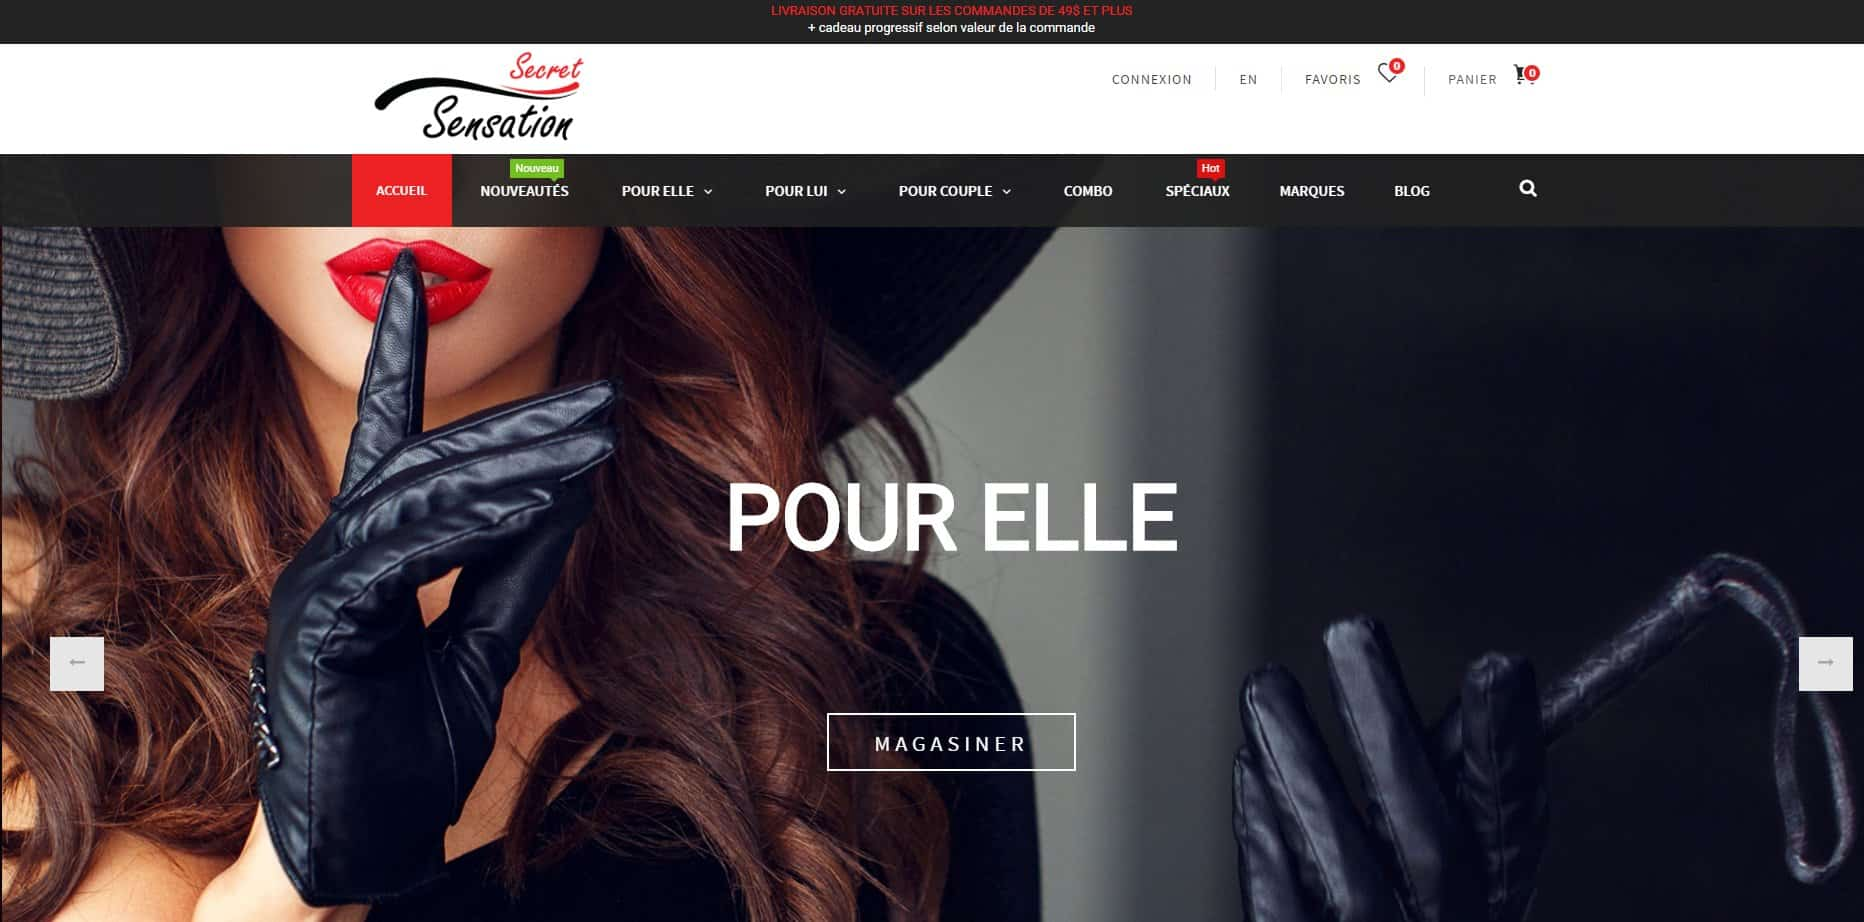 conception-boutique-en-ligne-magento-secret-sensation-1